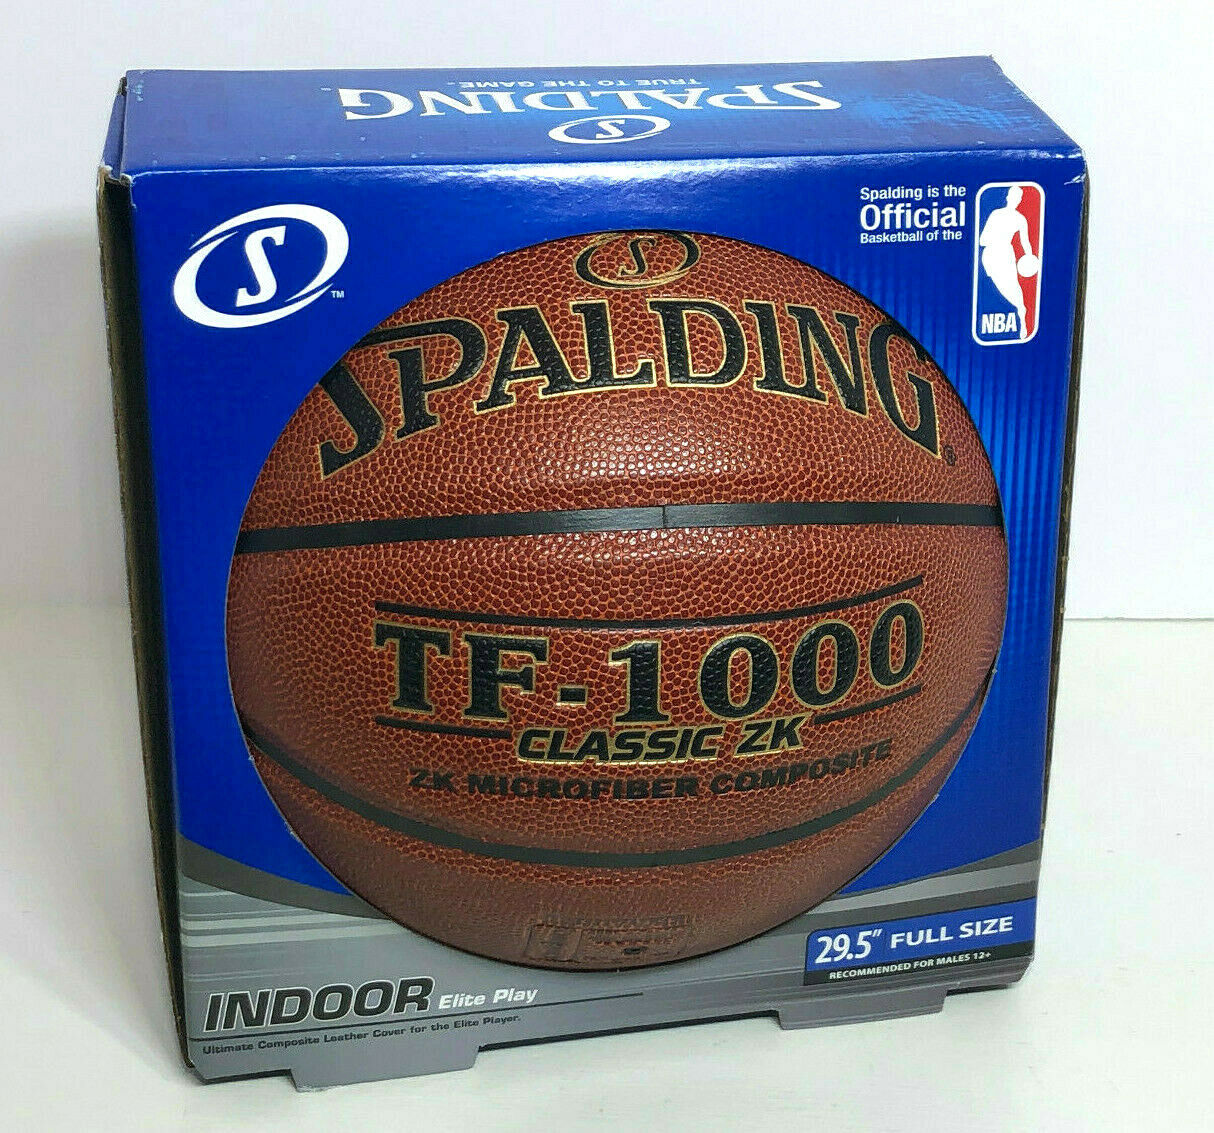 1000 Legacy Competition Basketball Size 7 Indoor Only Ball From Spalding TF